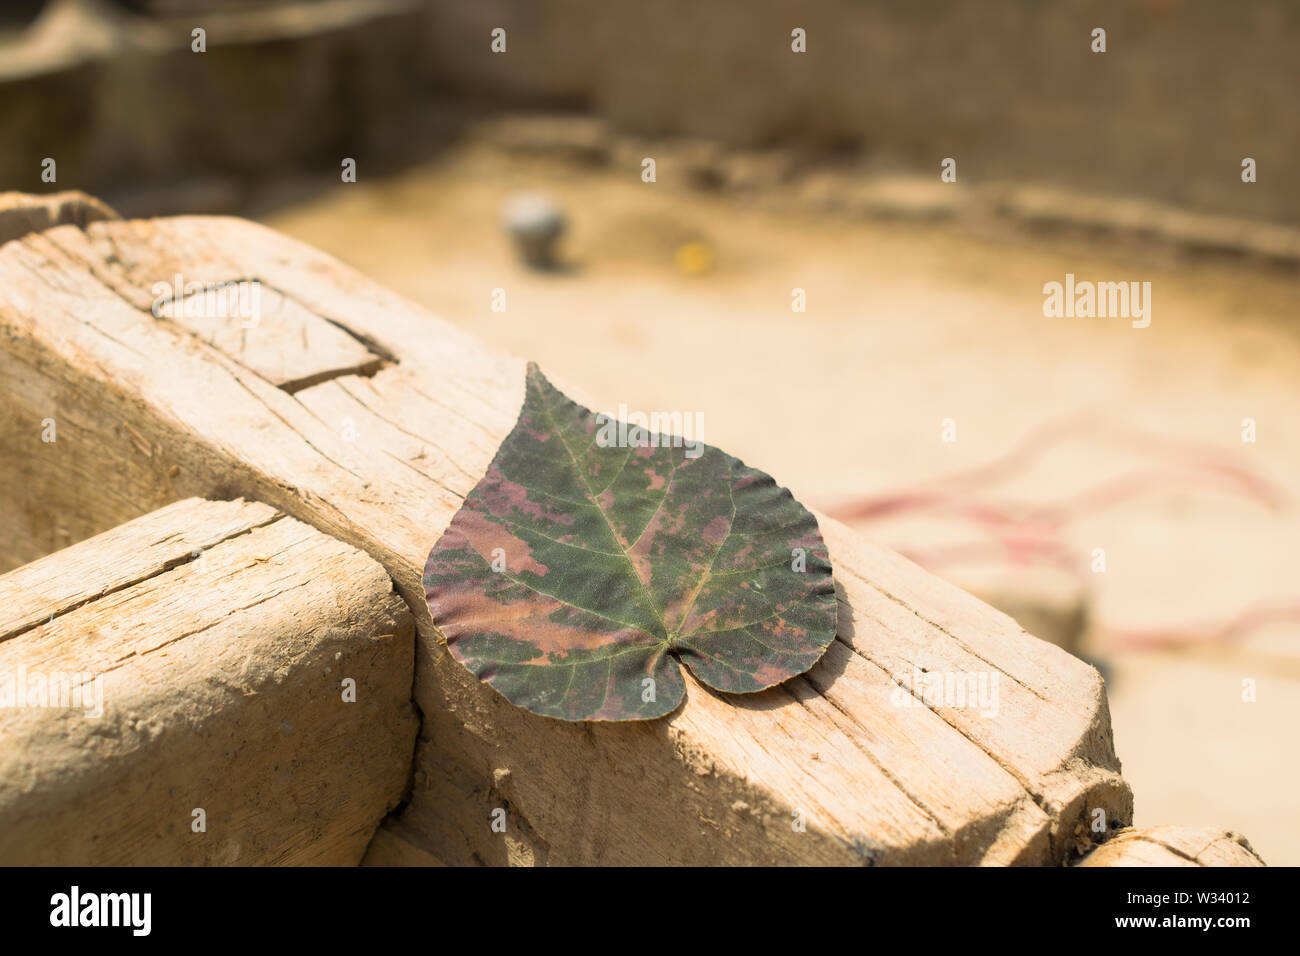 close up of a dried leaf with blurred background,dry leaf on a wooden structure. Stock Photo